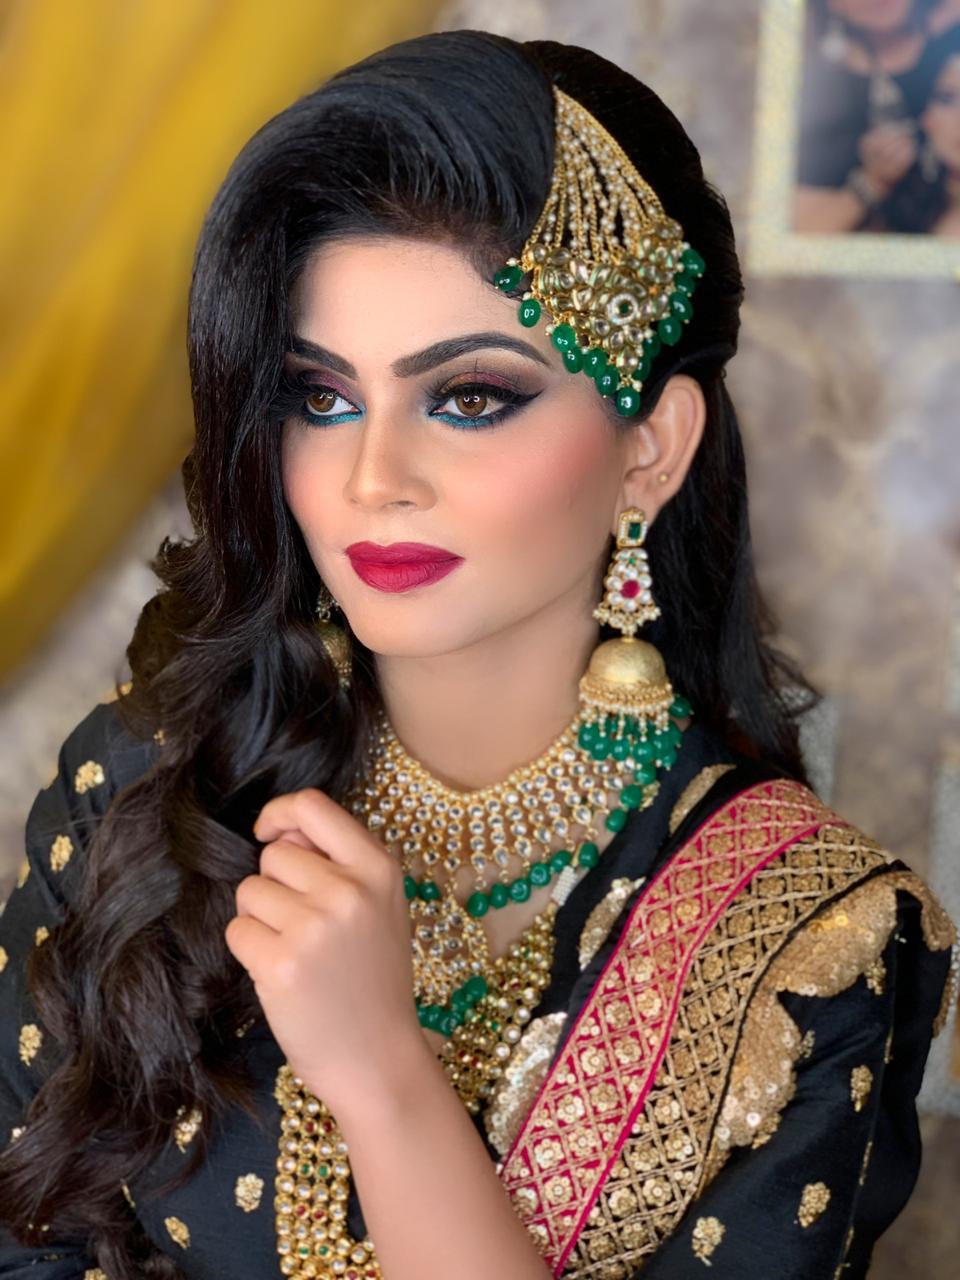 Makeup Courses in Delhi